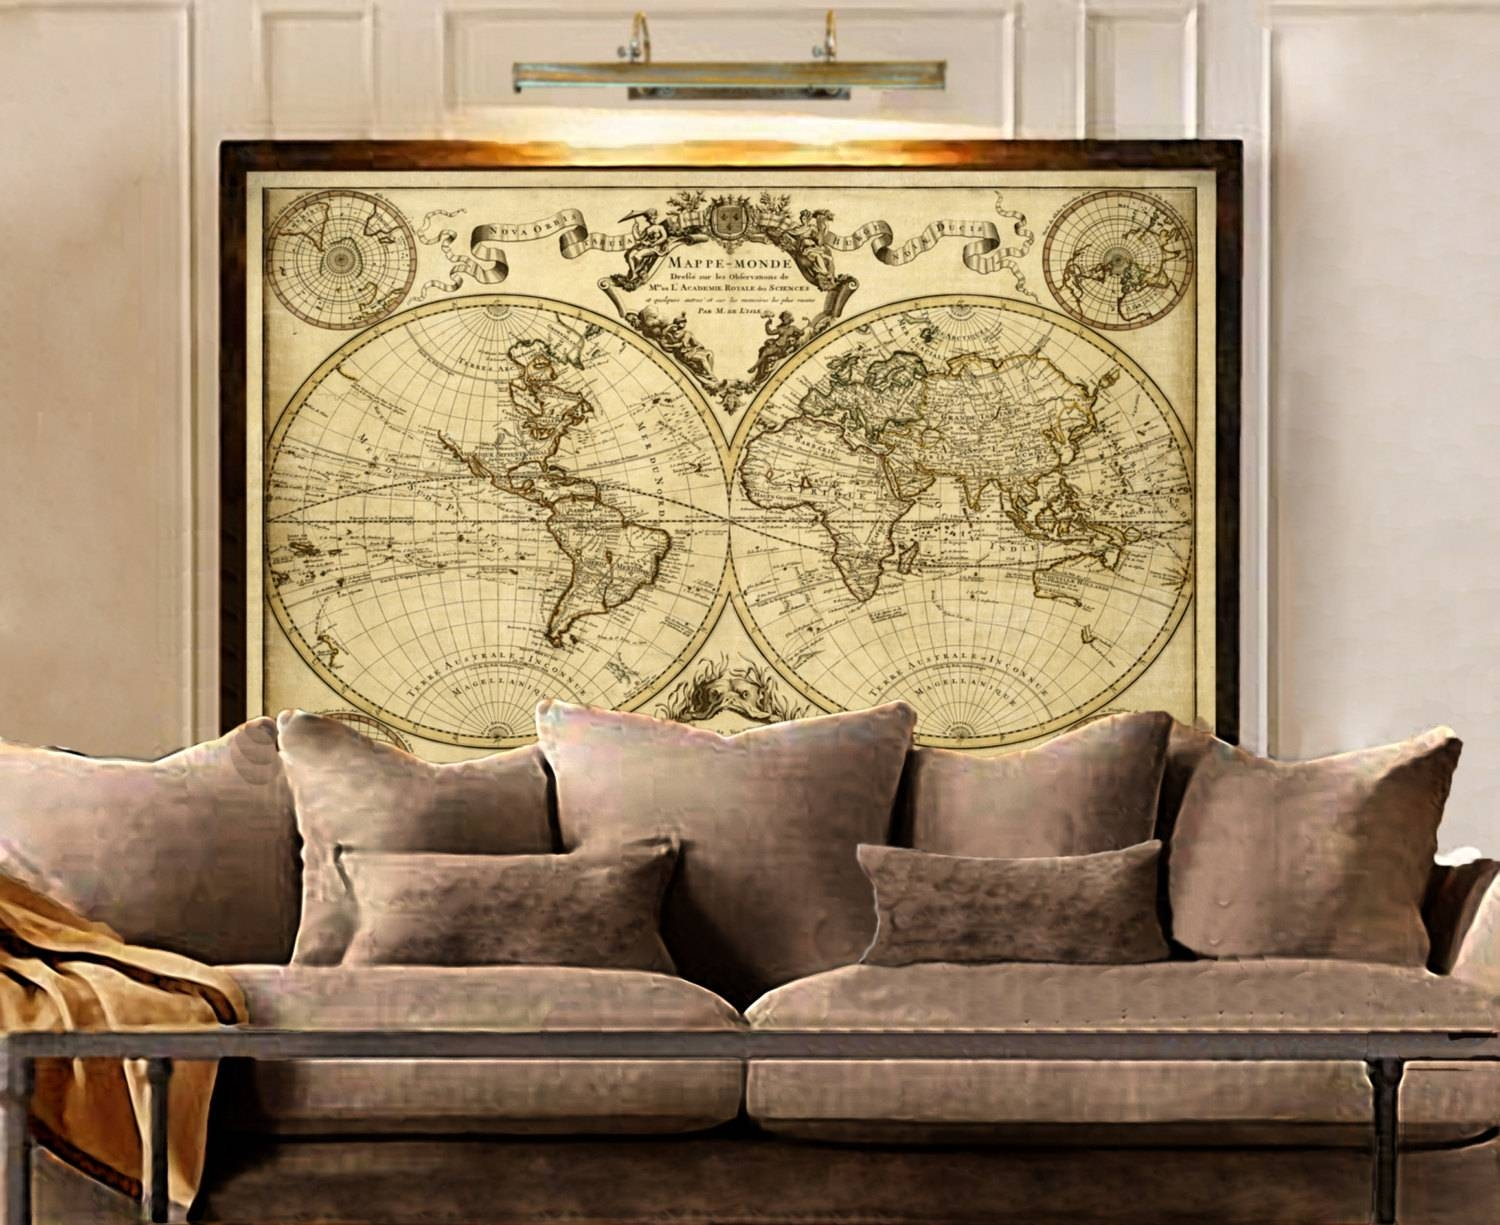 L'isle's 1720 Old World Map Historic Map Antique Style Regarding Most Up To Date Map Wall Art Maps (View 7 of 20)